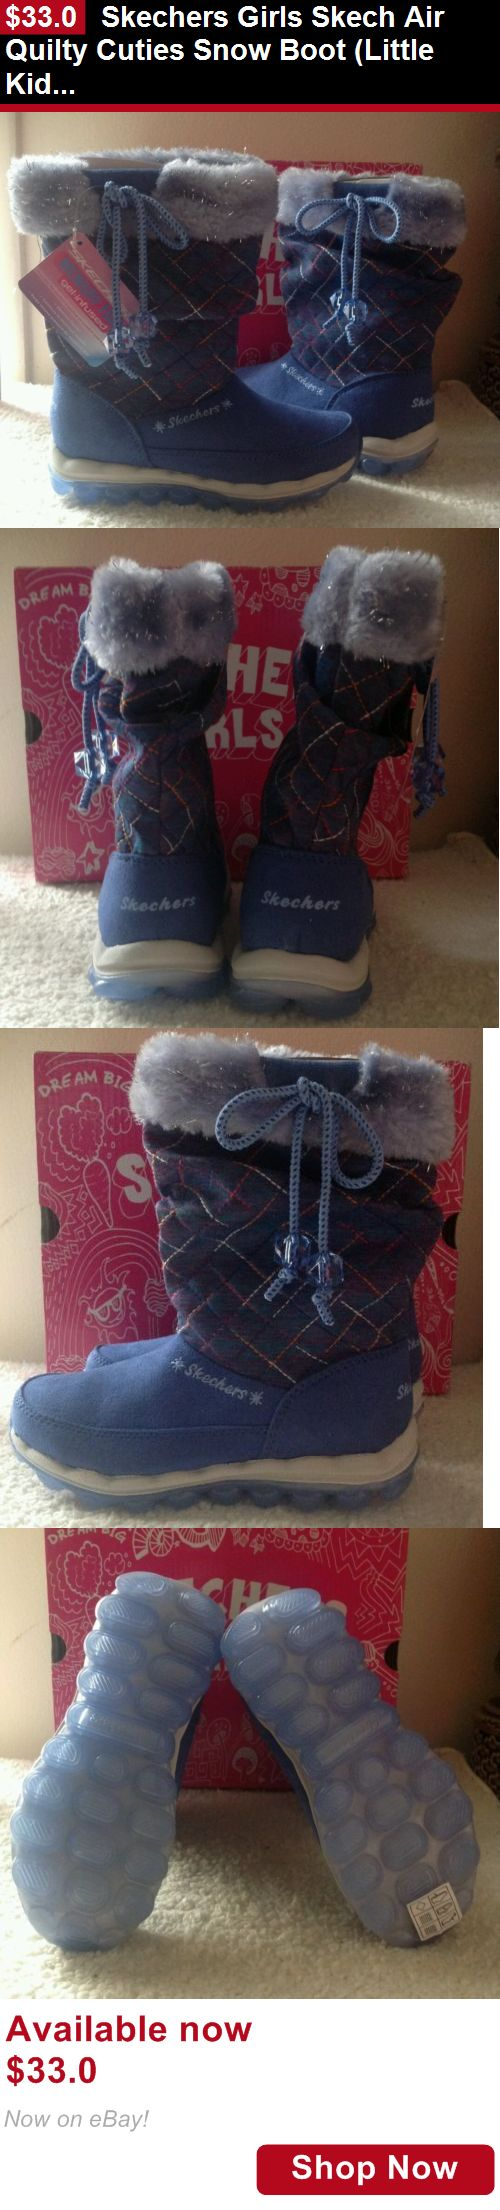 Children girls clothing shoes and accessories: Skechers Girls Skech Air Quilty Cuties Snow Boot (Little Kid Size 12) BUY IT NOW ONLY: $33.0